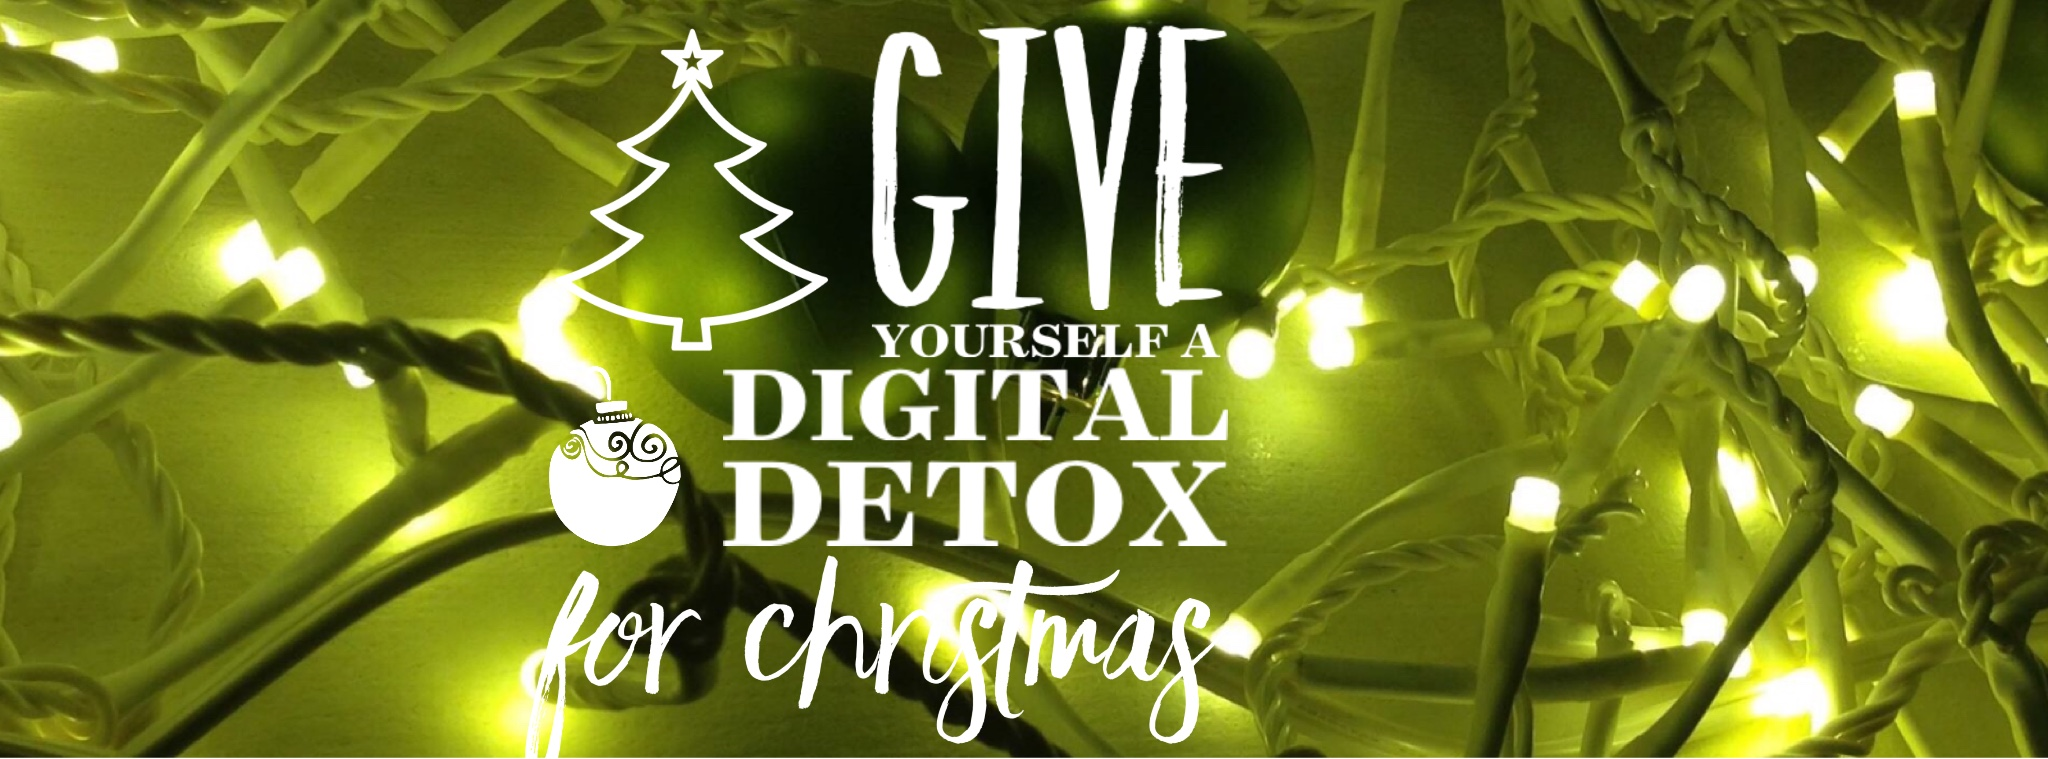 digital detox christmas banner